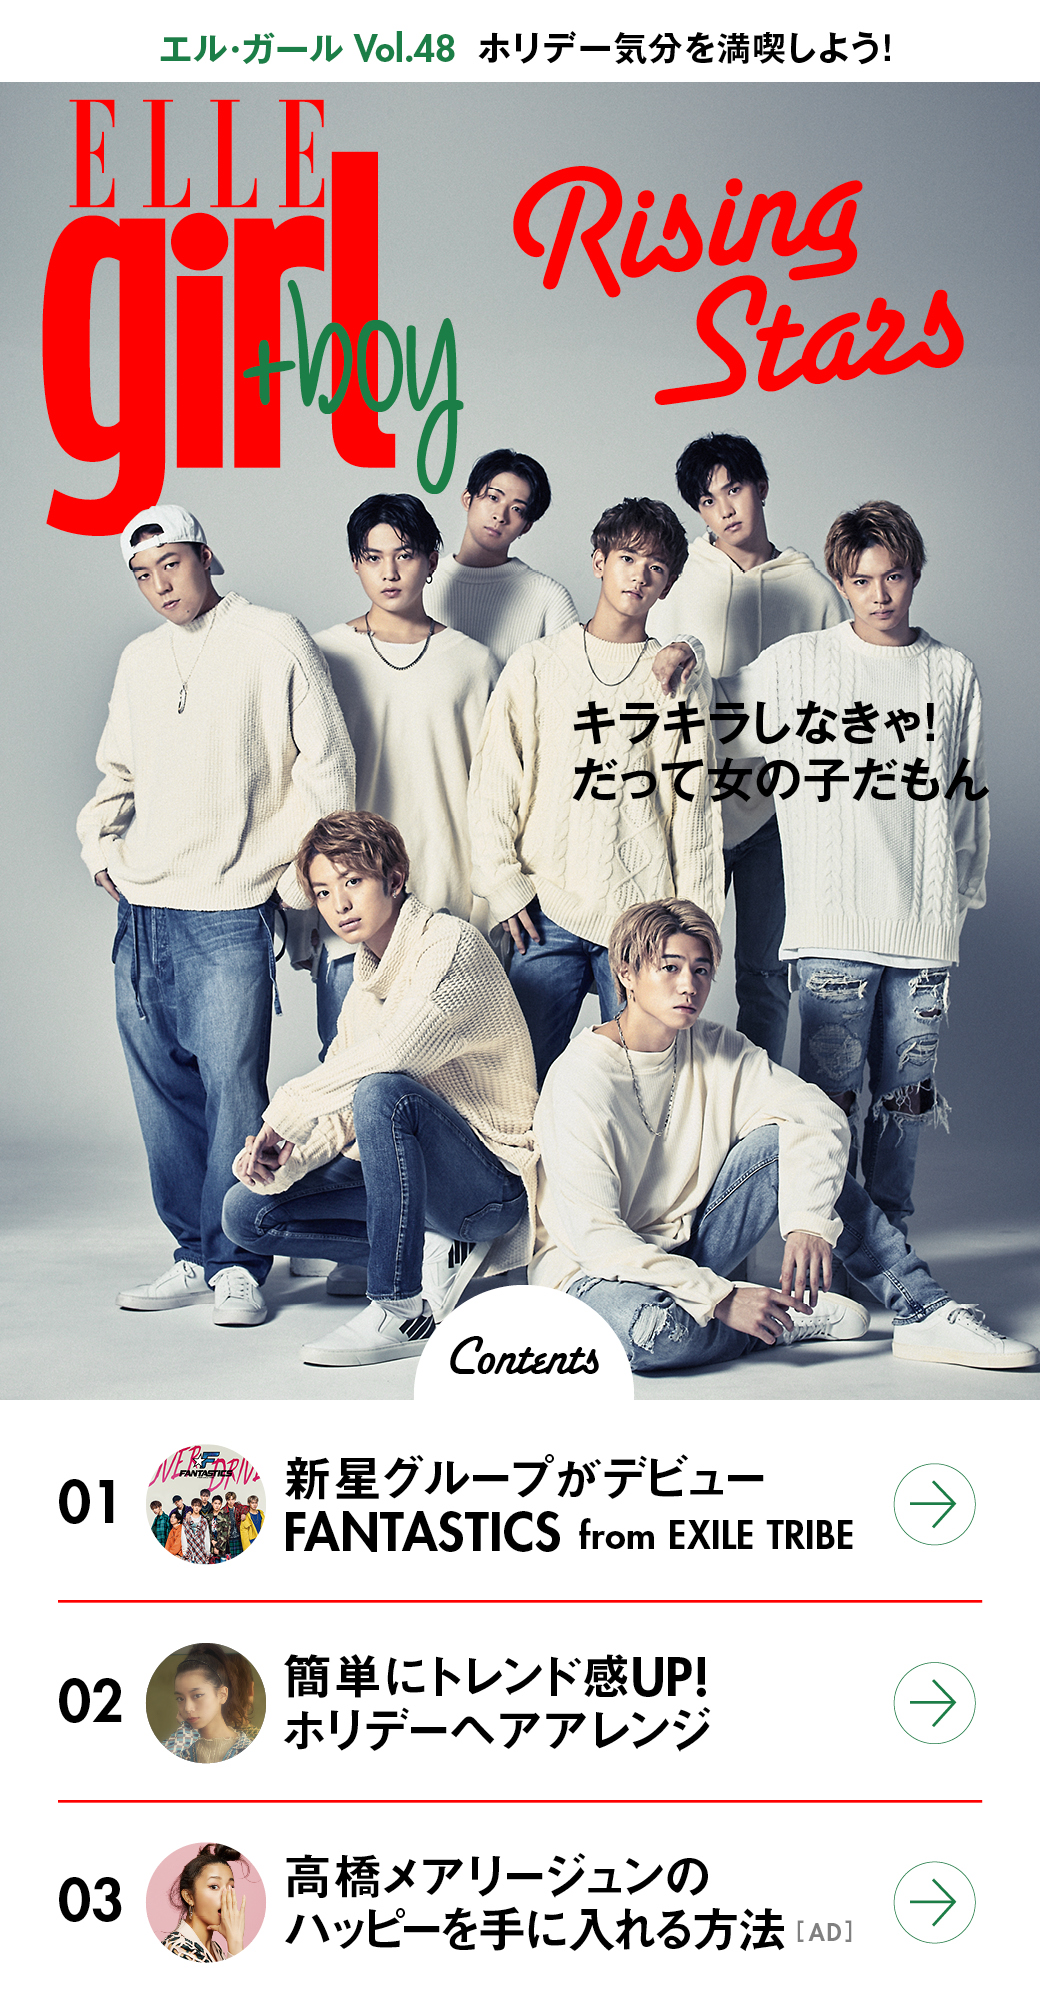 FANTASTICS from EXILE TRIBE初登場